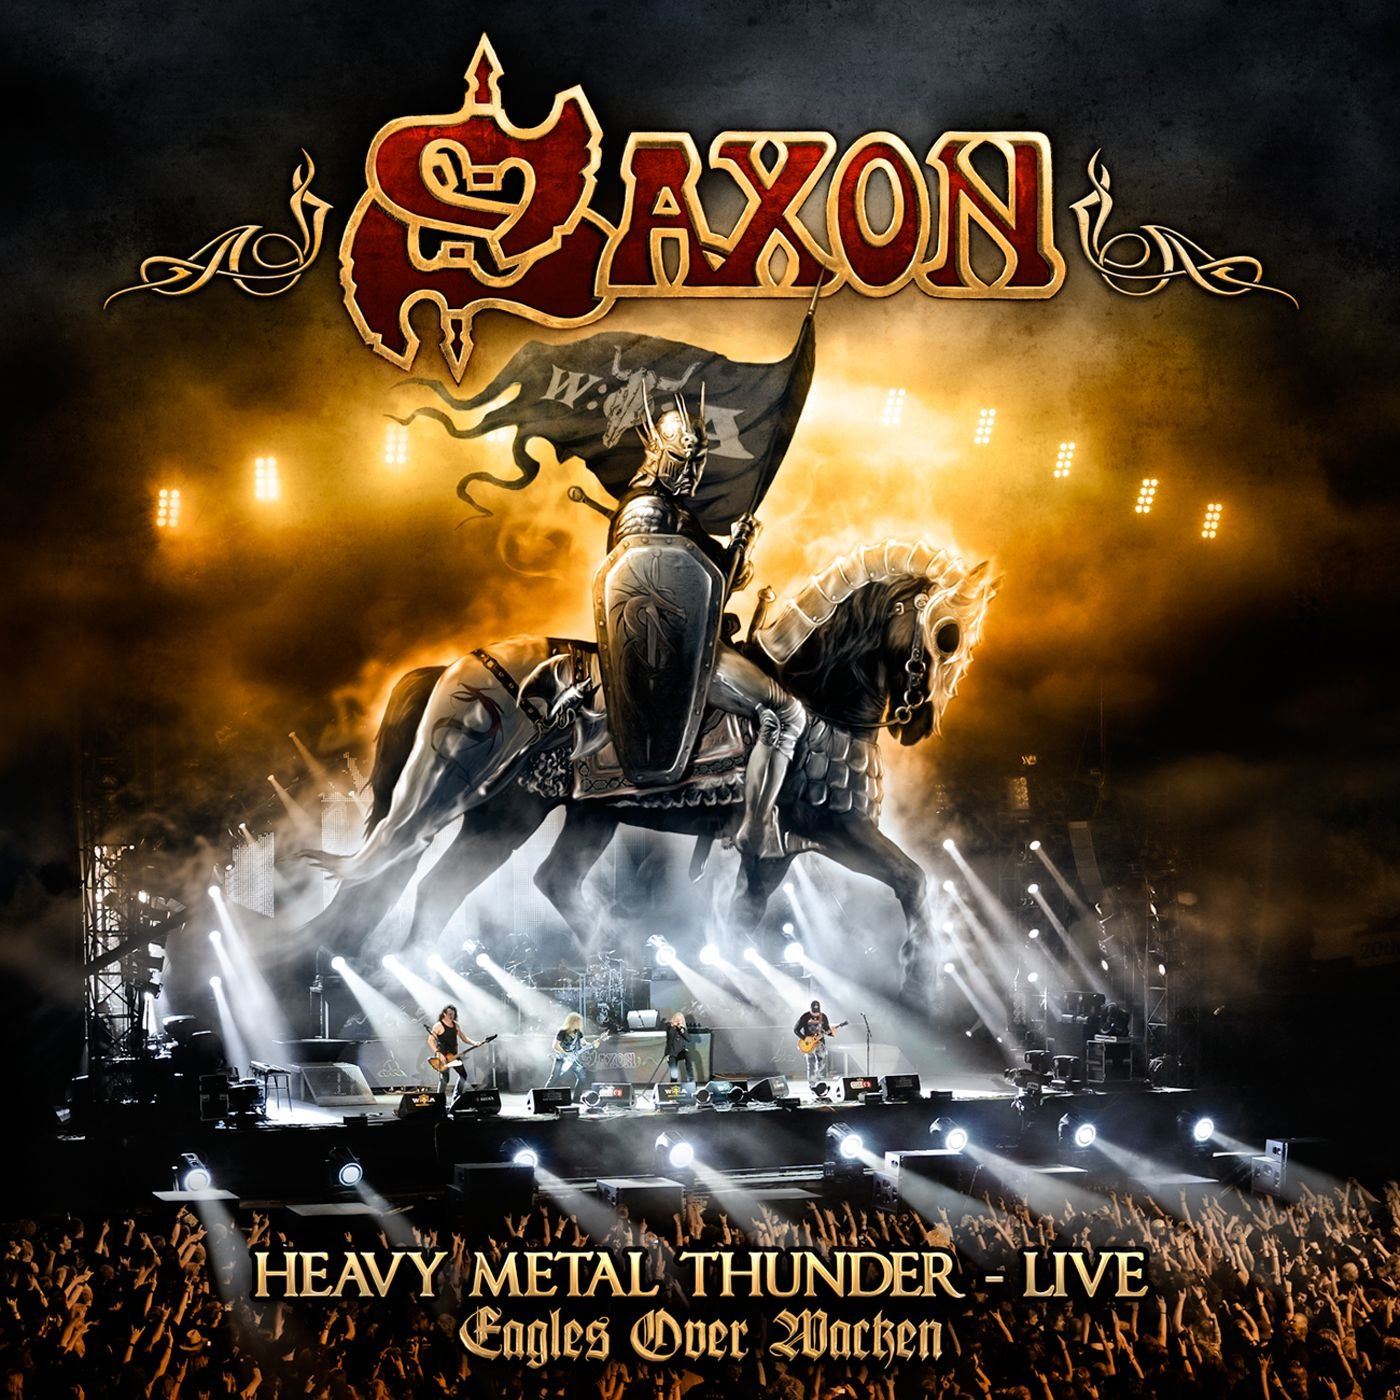 Heavy Metal Thunder - Live - Eagles Over Wacken (2 CD / 1 DVD Set)